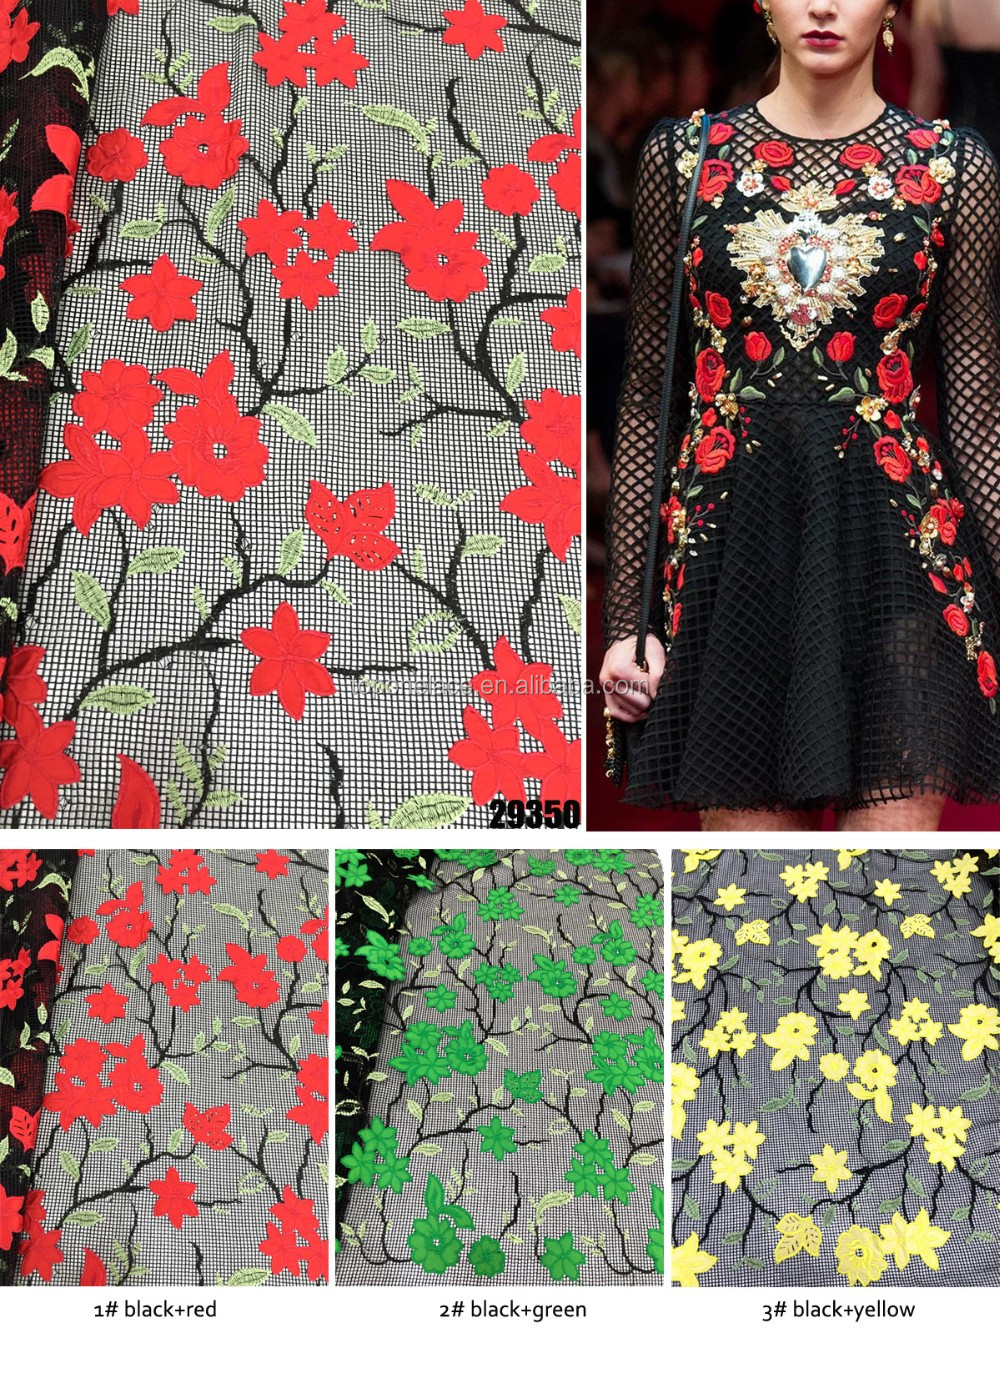 2016 In-stock Hot Sale Fashion Hollow Evening Chinese Wedding Dress Chemical Lace Embroidery Design Fabric With Red Rose Flowers